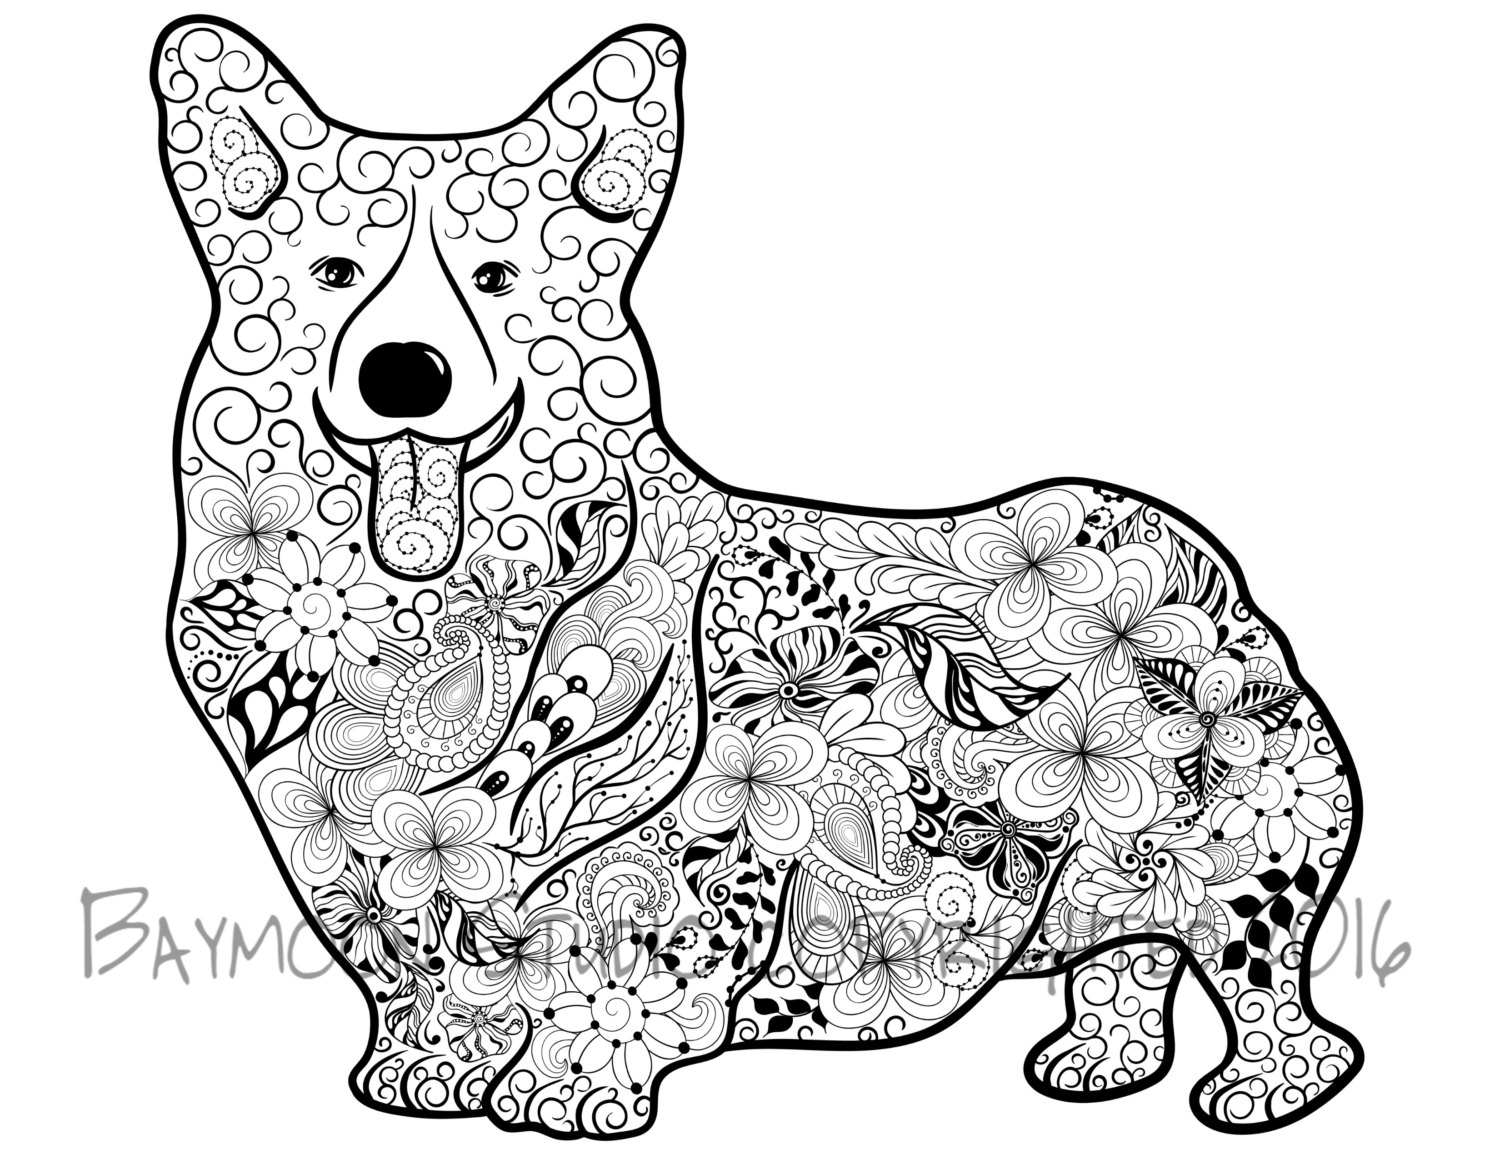 1500x1159 Corgi Coloring Pages Images Free Coloring Pages